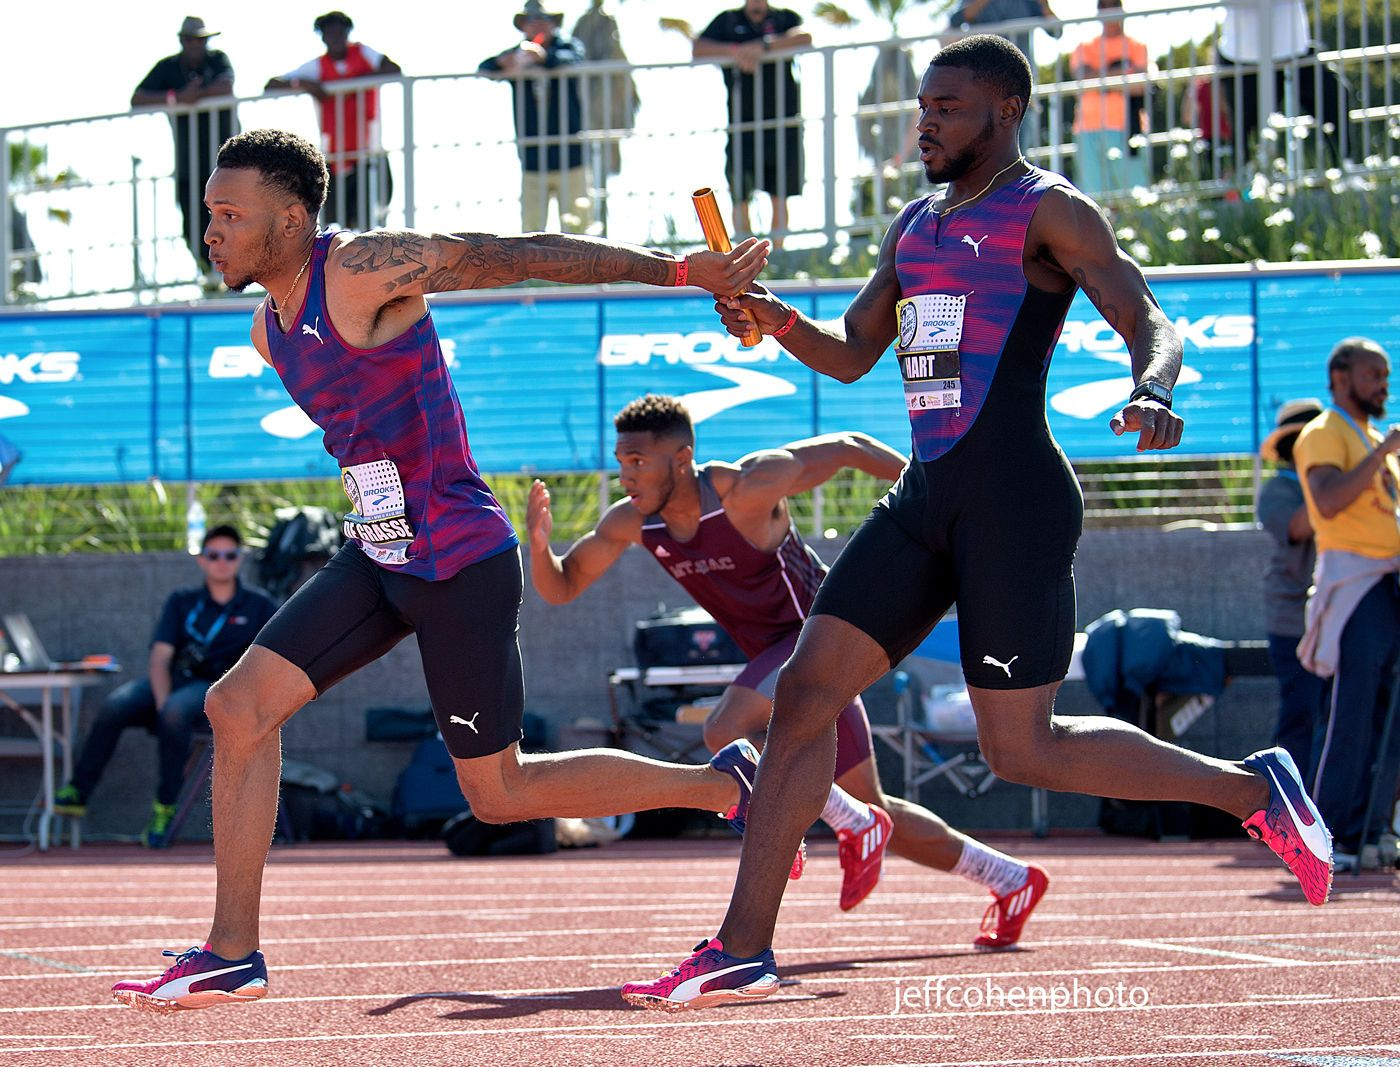 1degrasse_hart_4x200_2017_mt_sac_relays__jeff_cohen_photo__2427_web.jpg